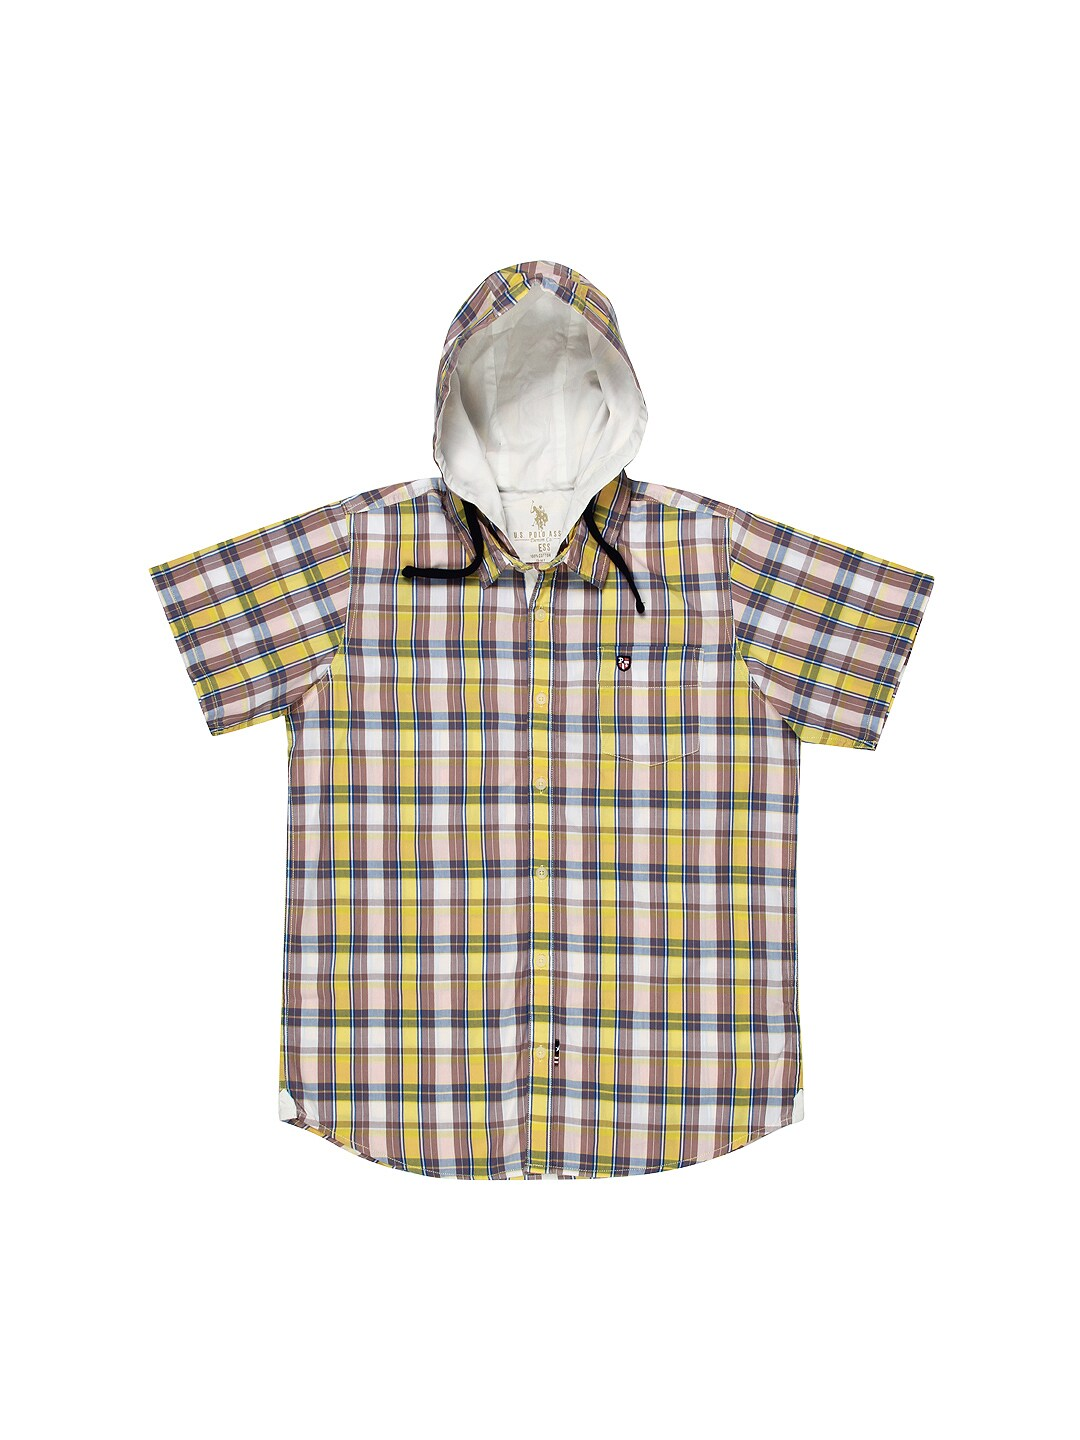 U.S. Polo Assn. Kids Boys Yellow & Mauve Hooded Shirt